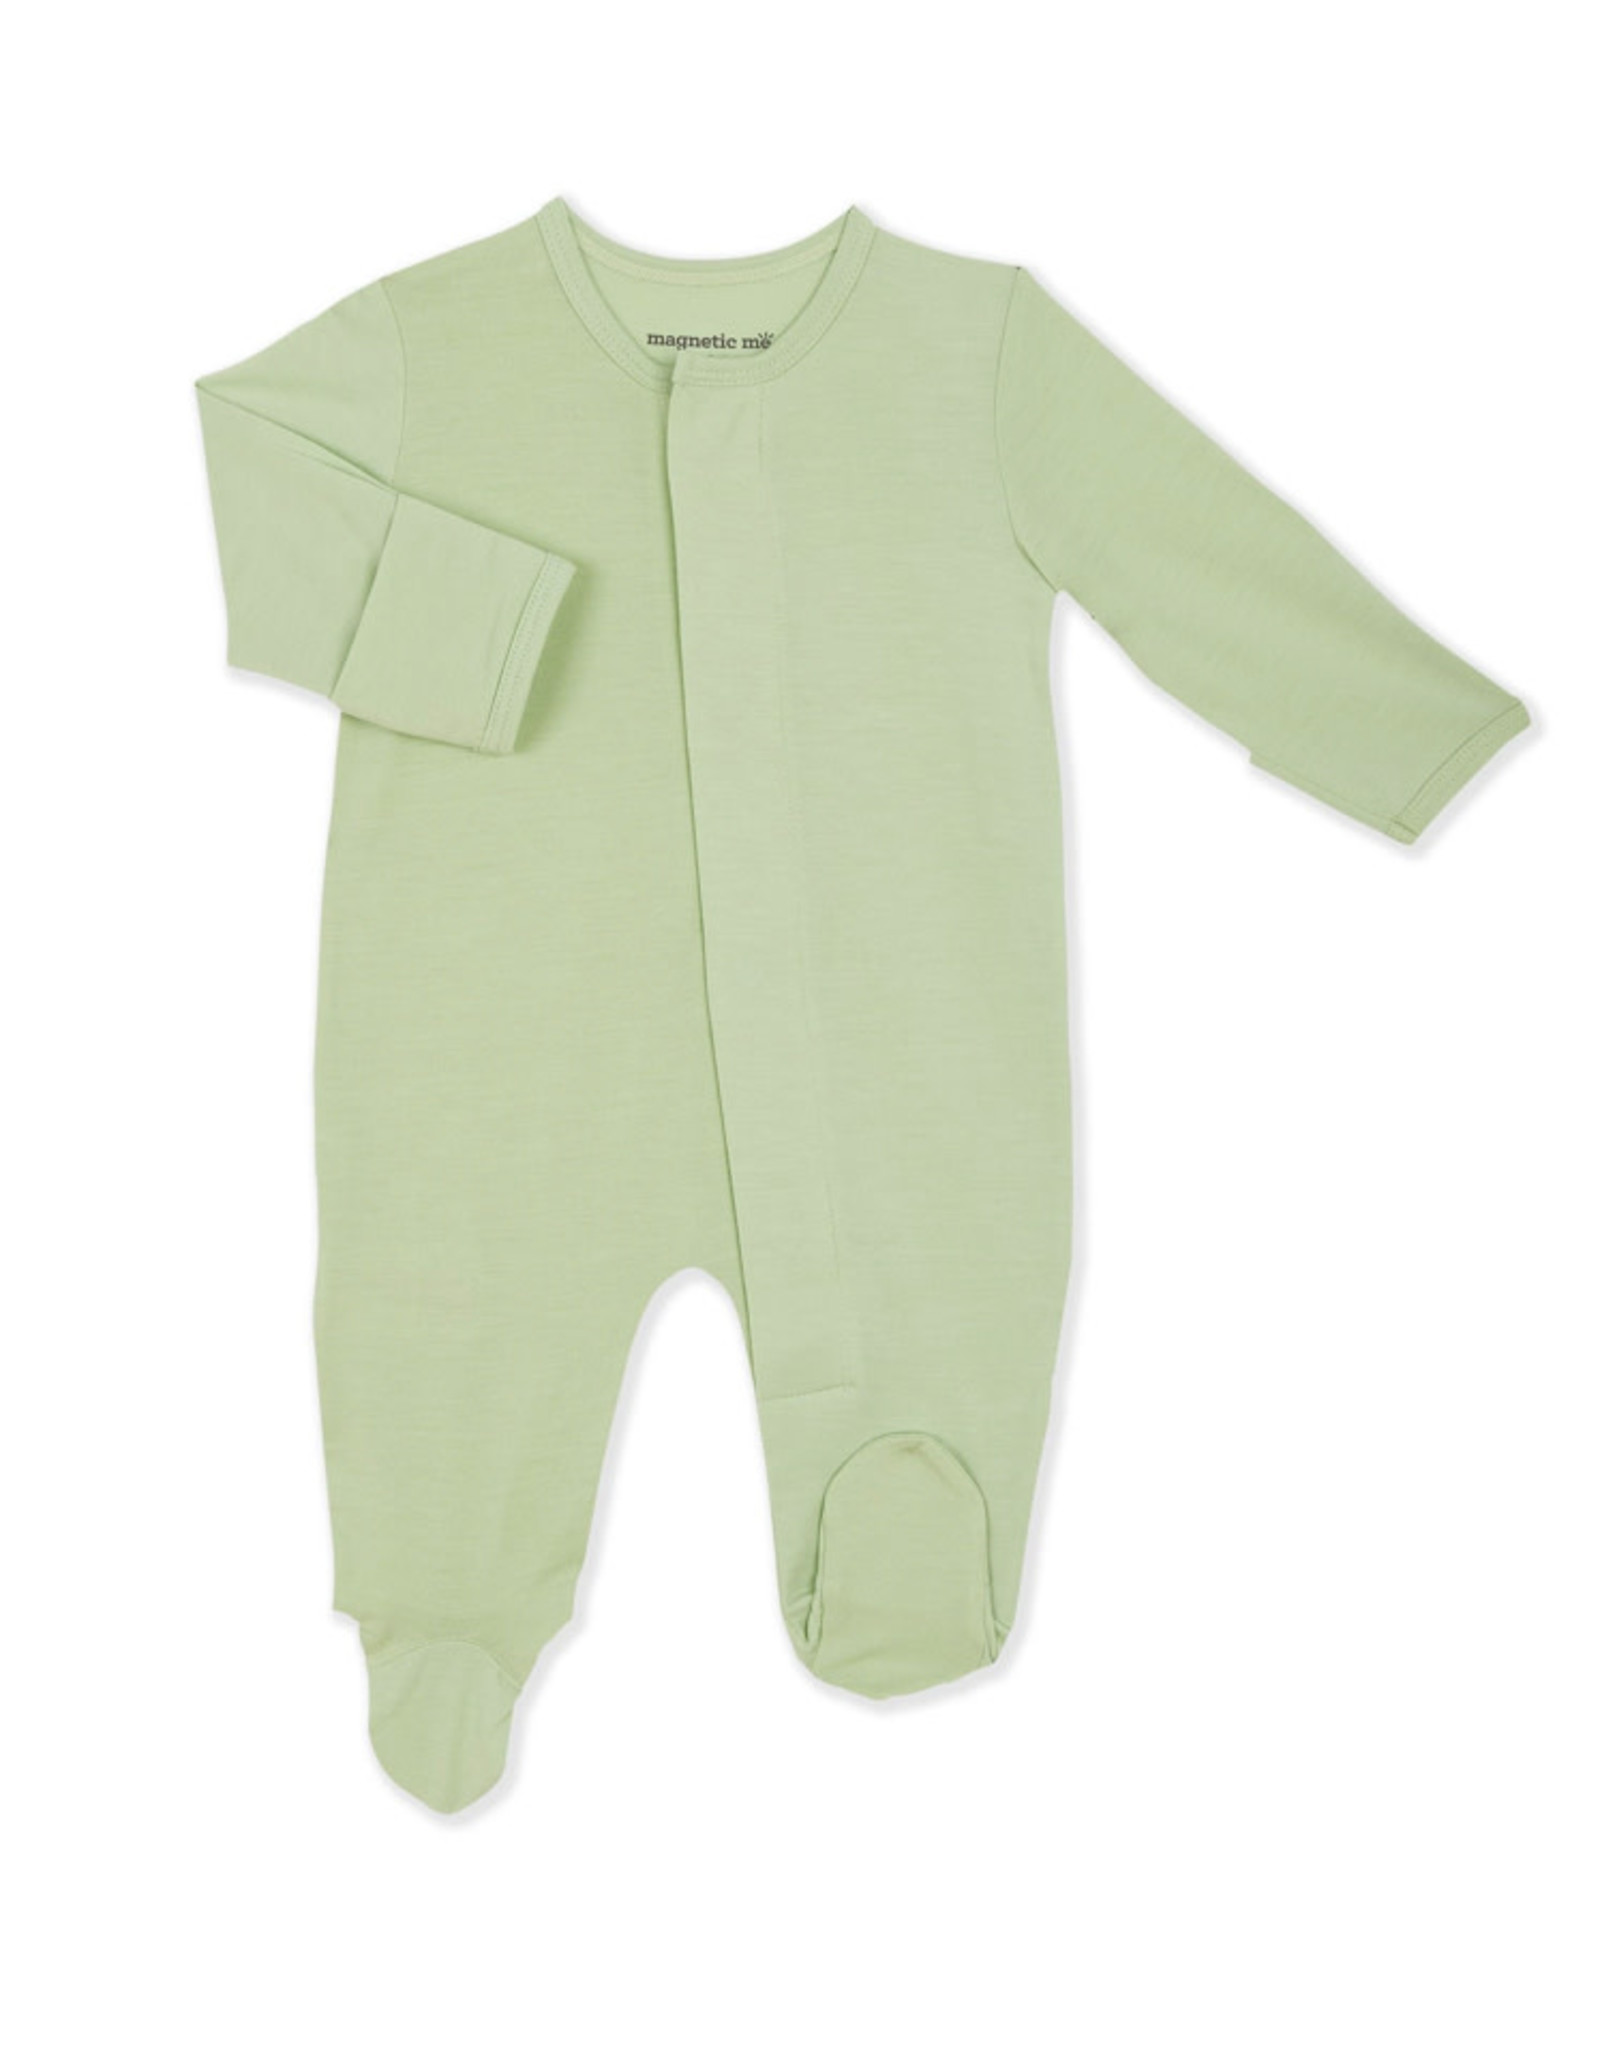 Magnetic Me Magnetic Me- Pastel Green Solid Modal Magnetic Footie